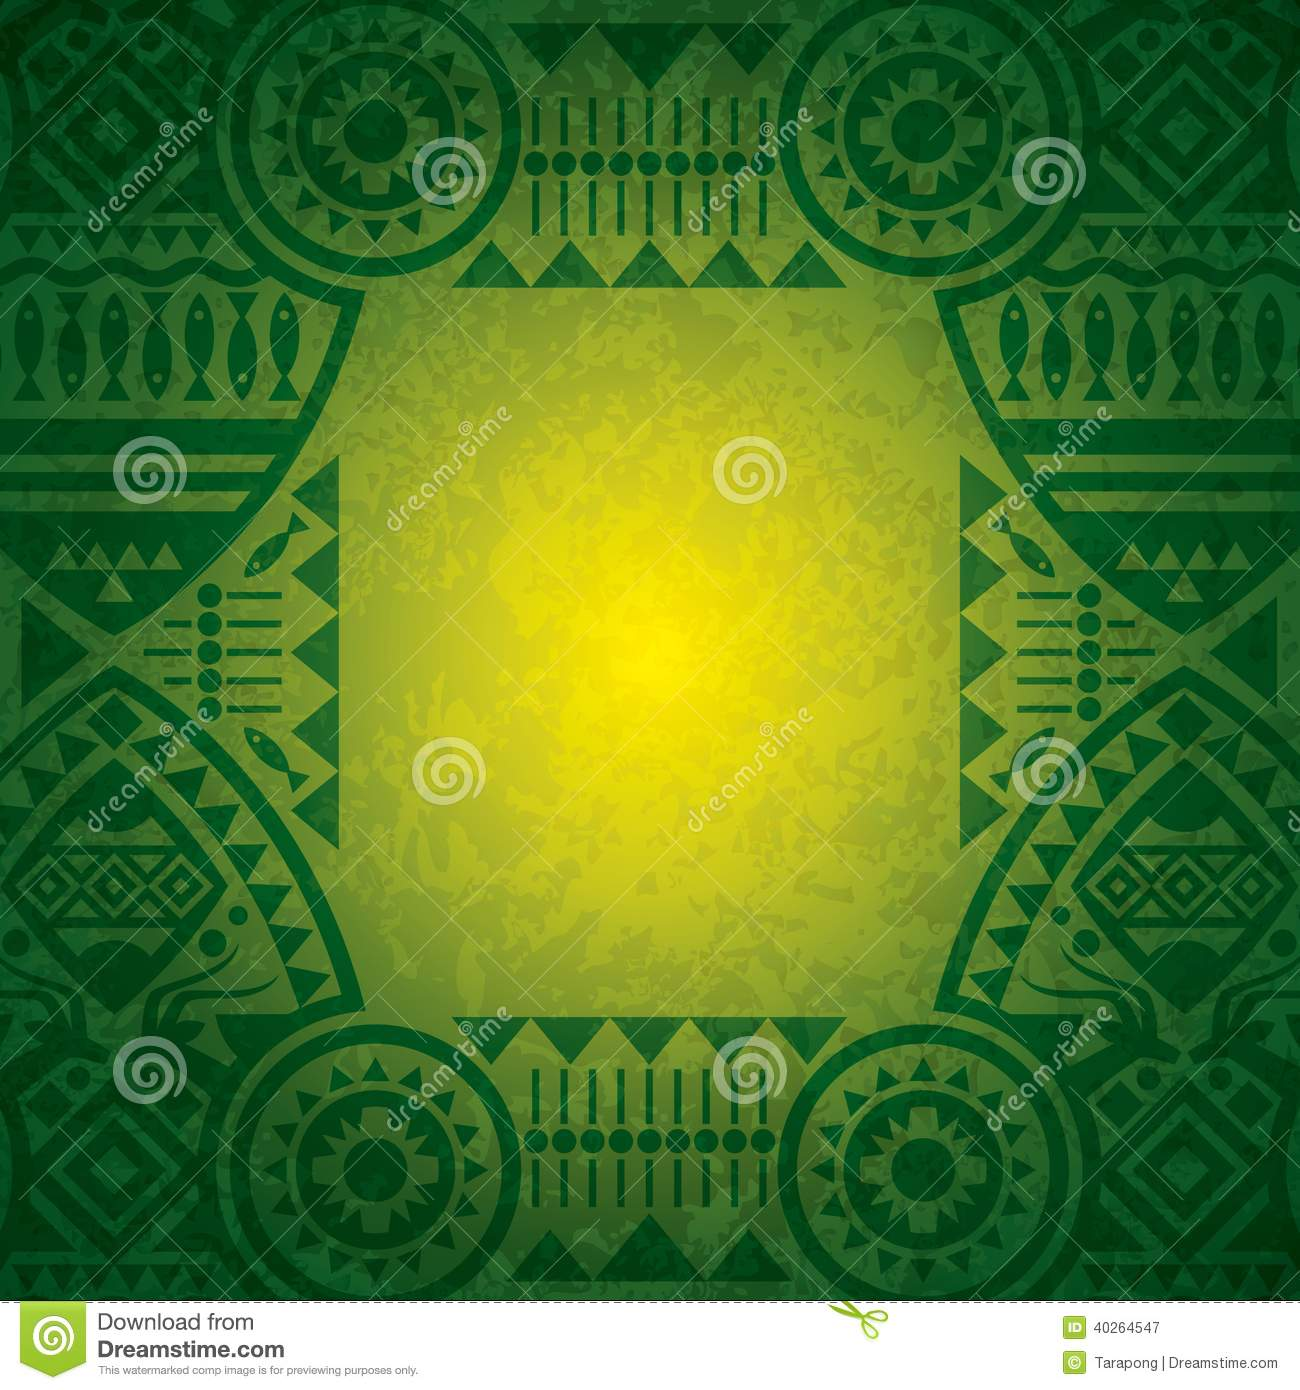 African background design template for cover design, magazine cover ...